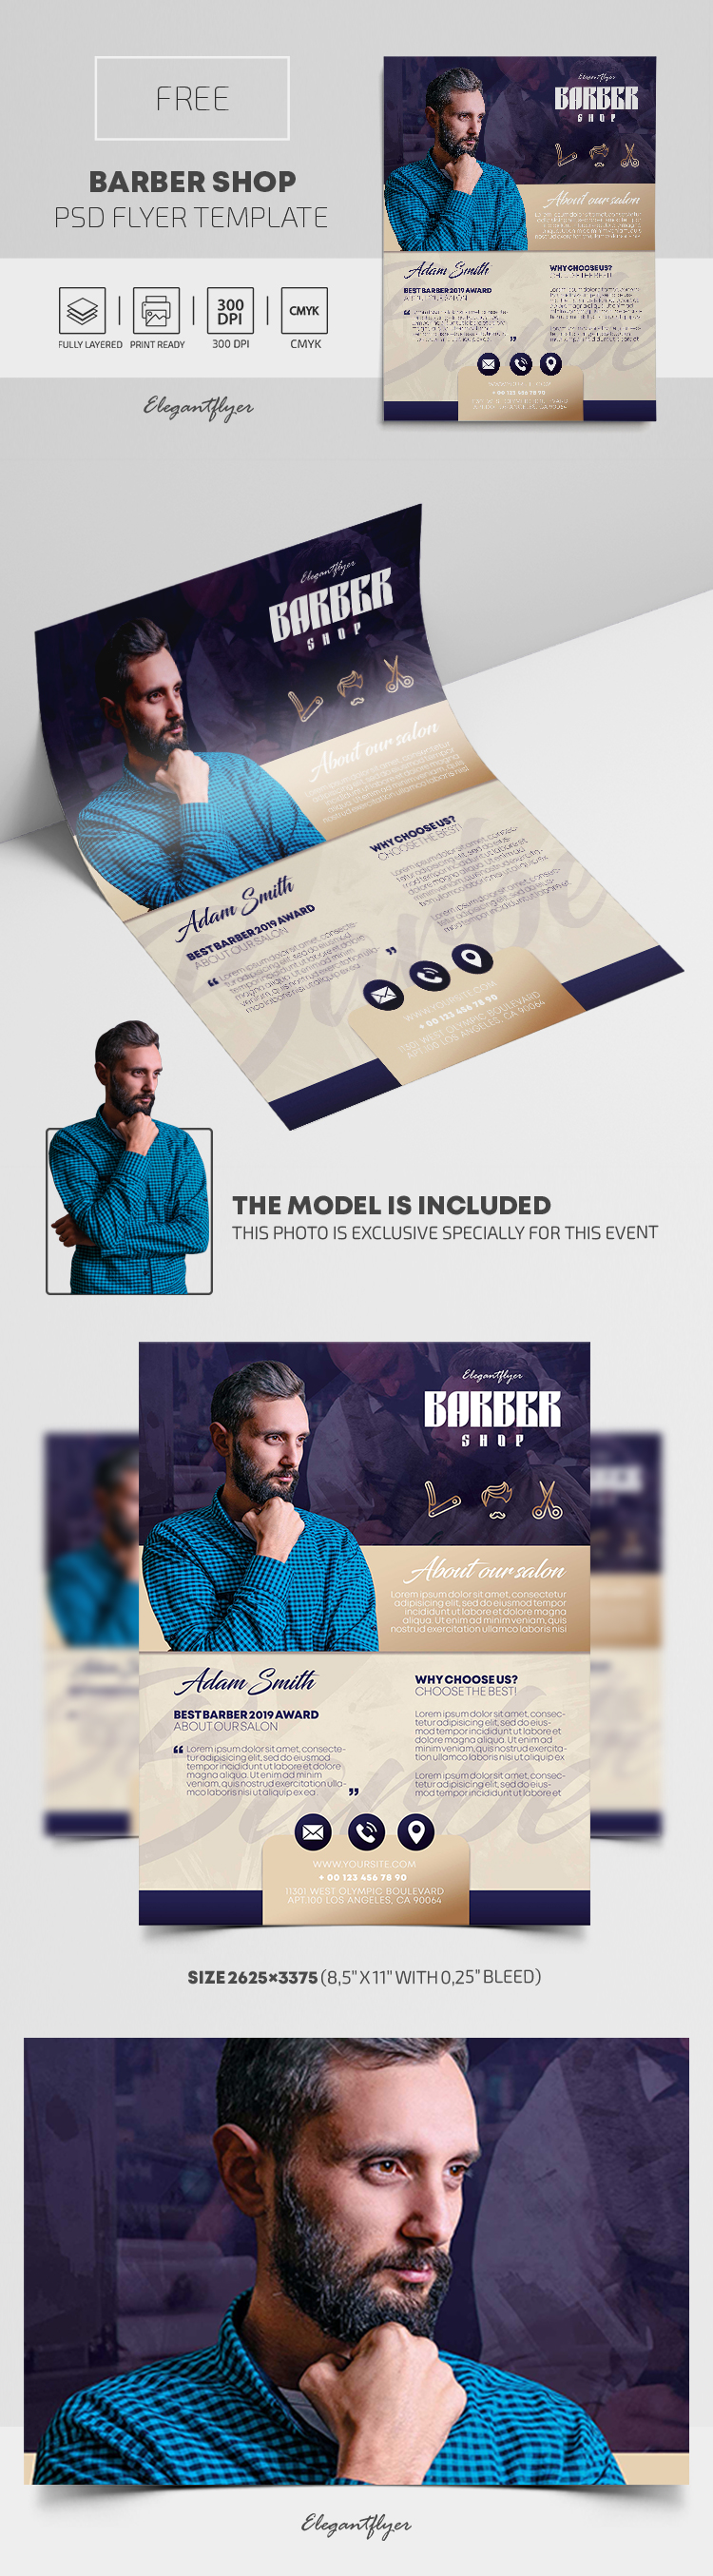 Barber Shop – Free PSD Flyer Template